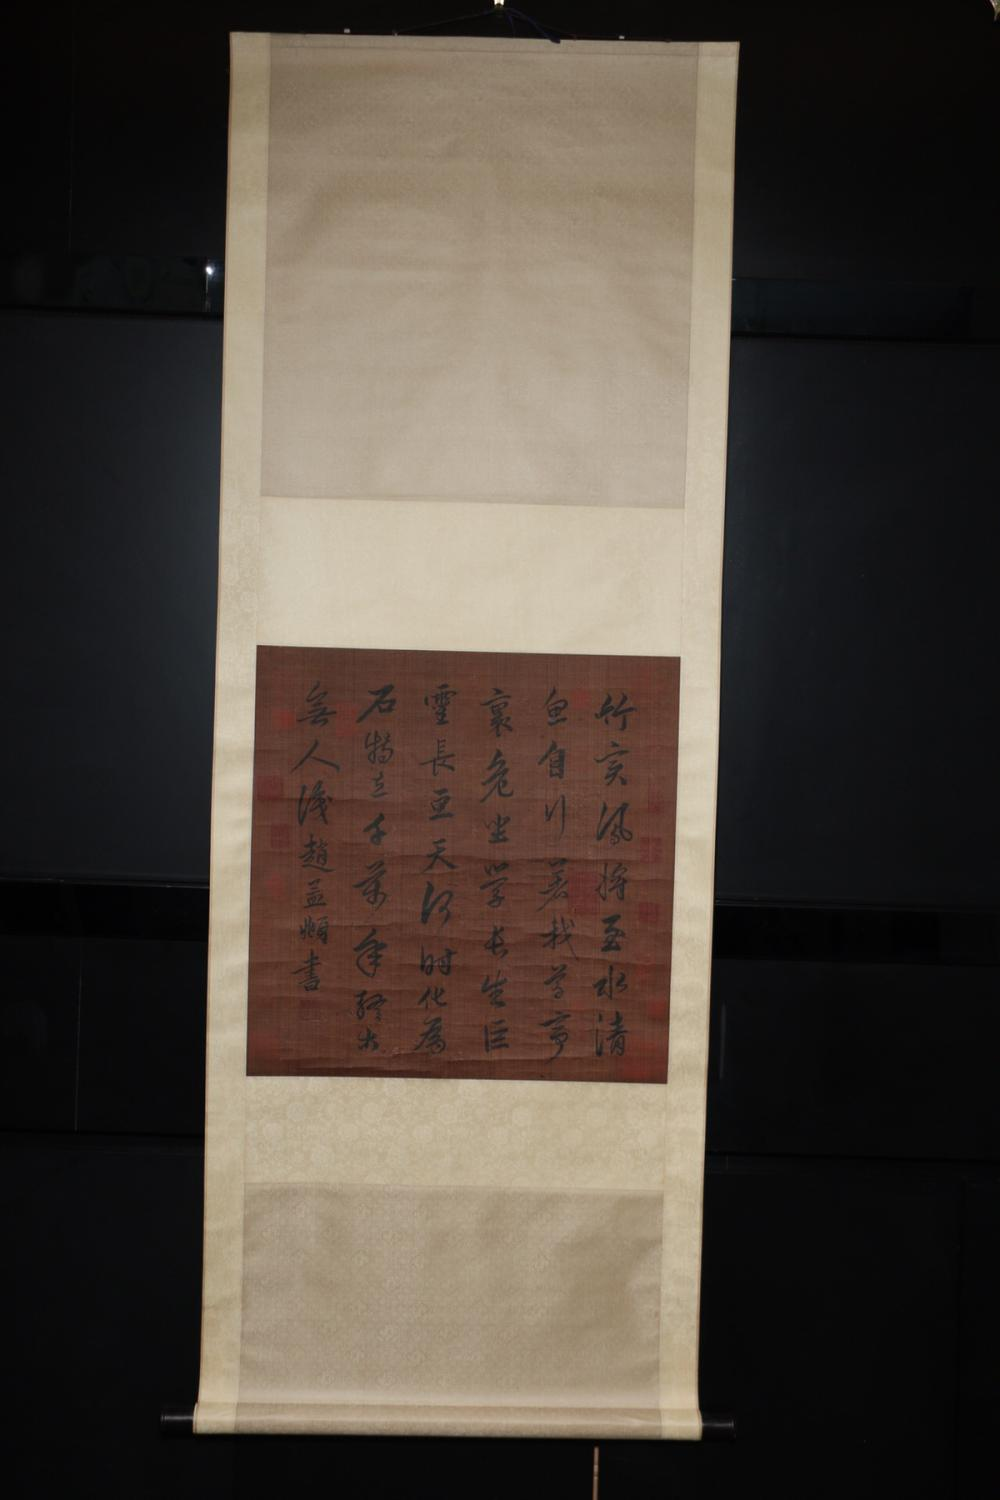 A VERTICAL AXIS CALLIGRAPHY OF MENGFU ZHAO